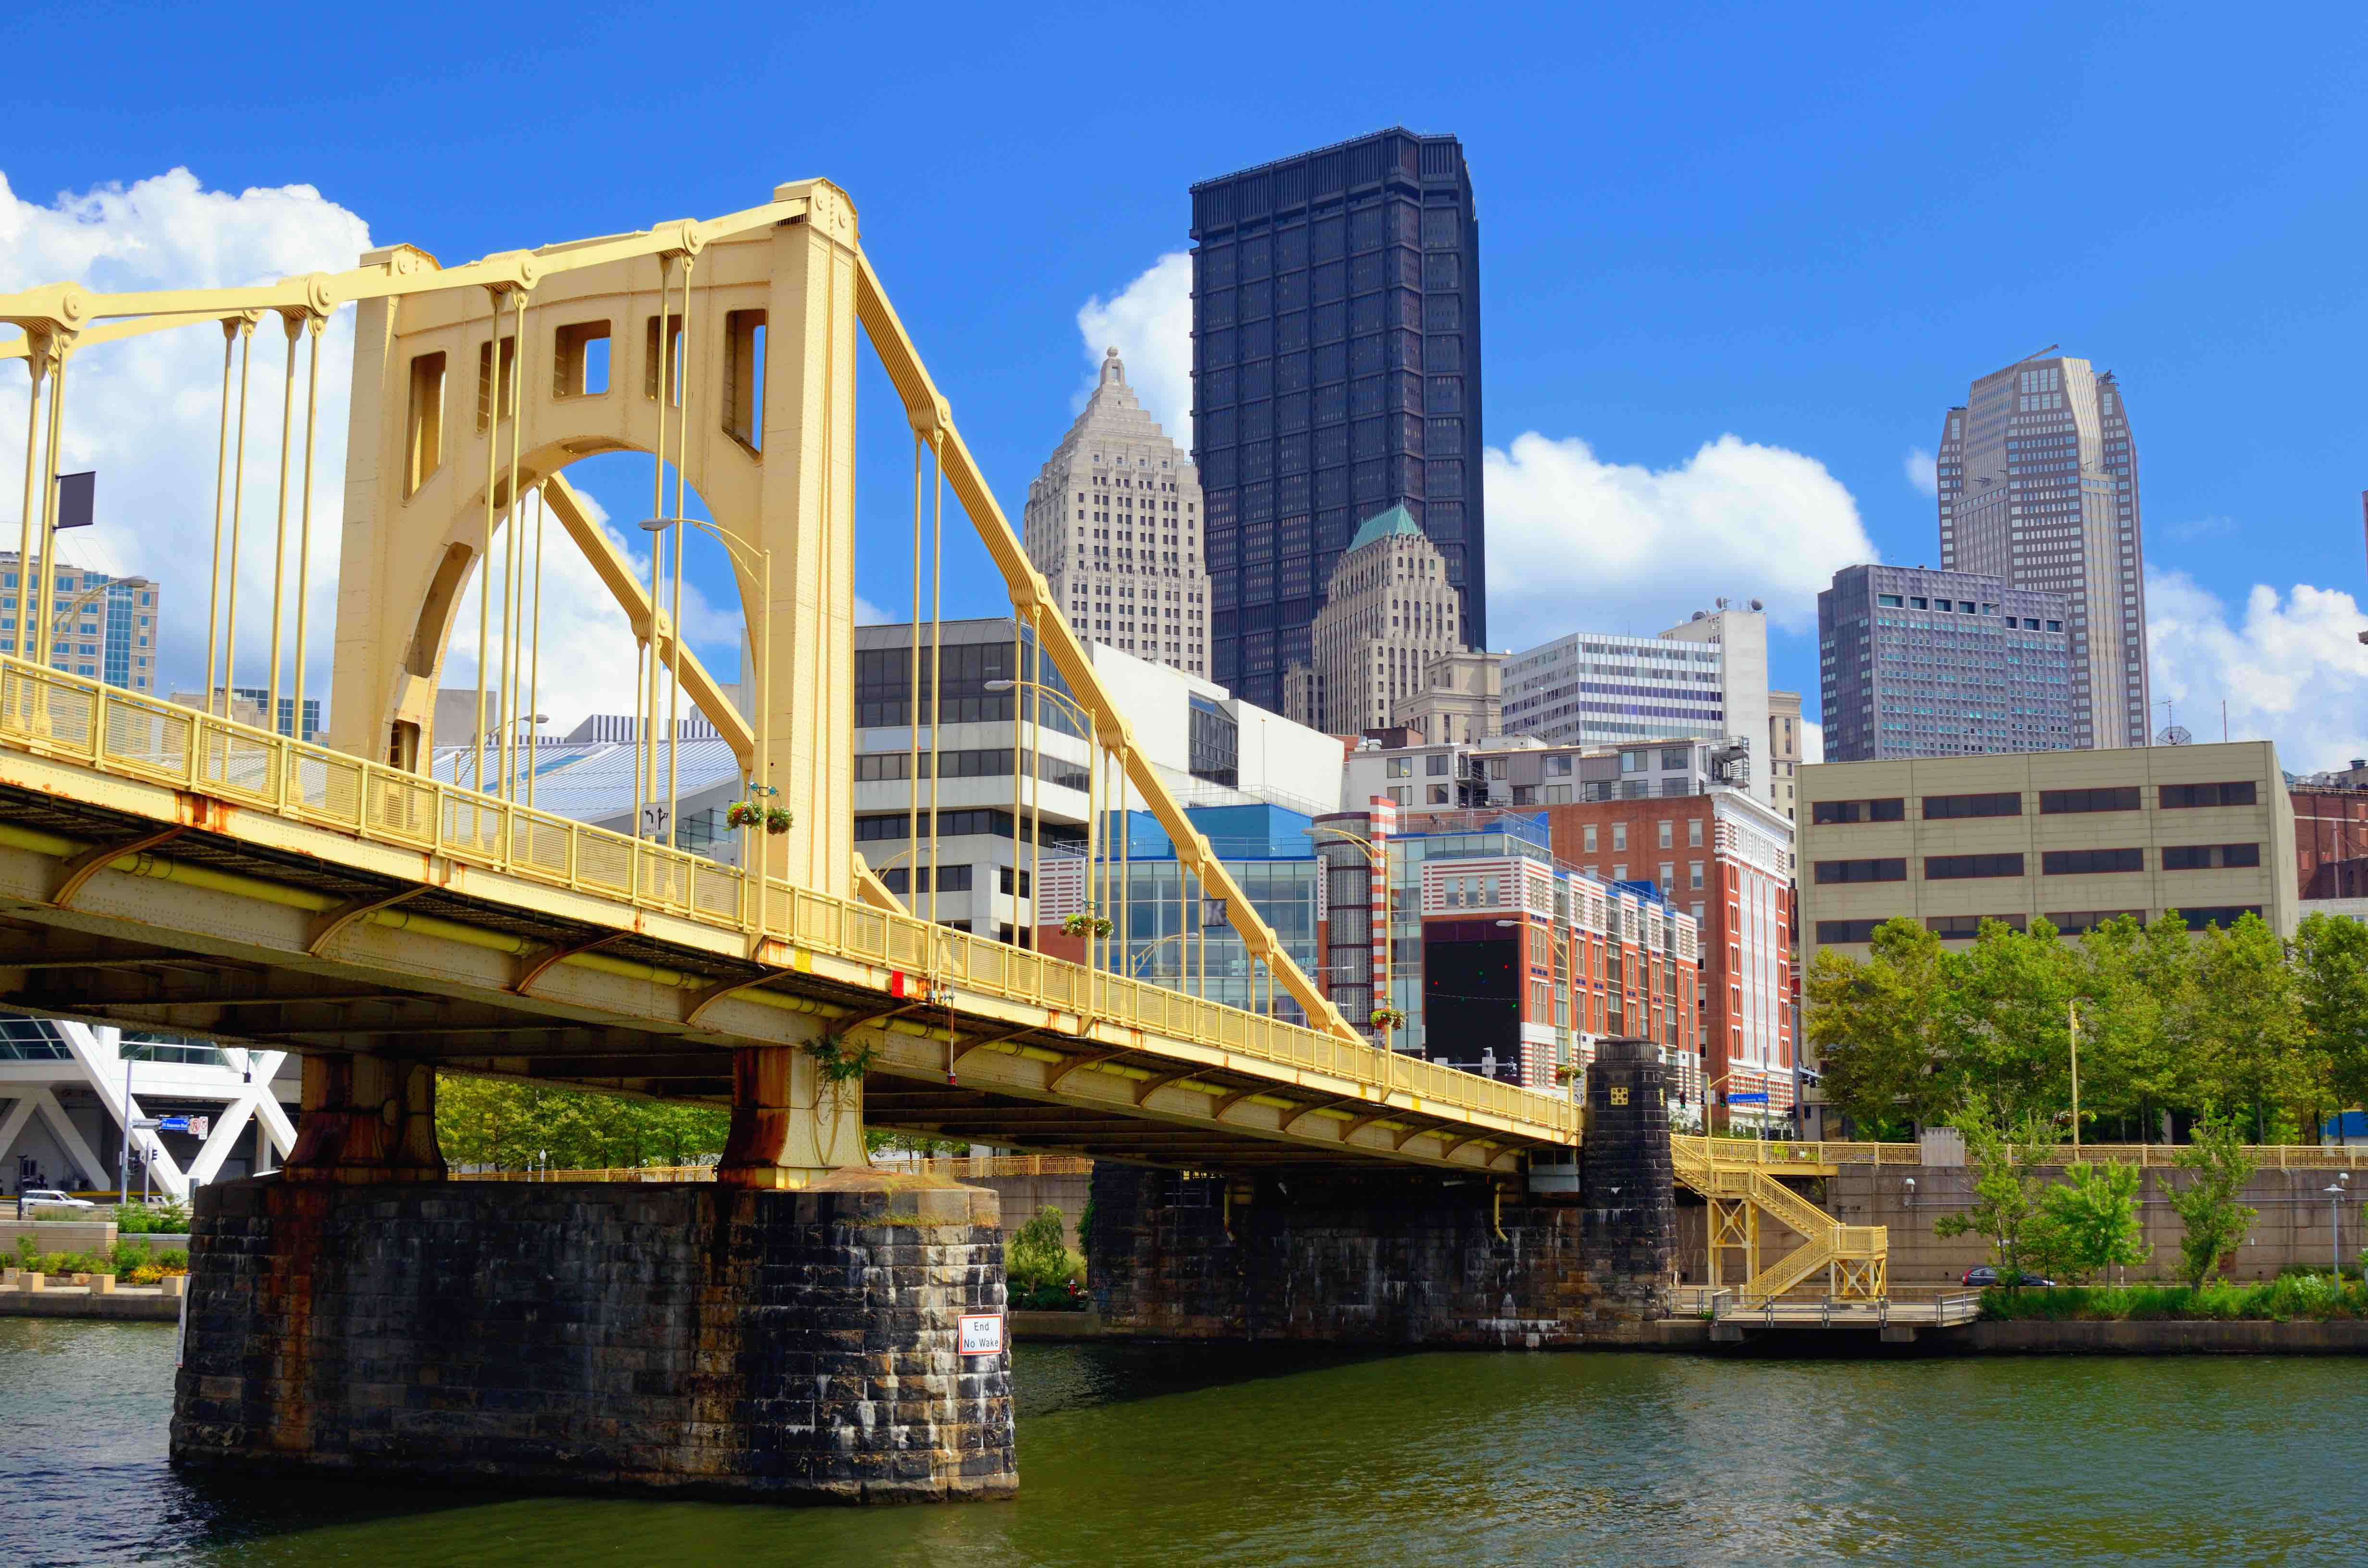 Finding renters insurance in Pittsburgh